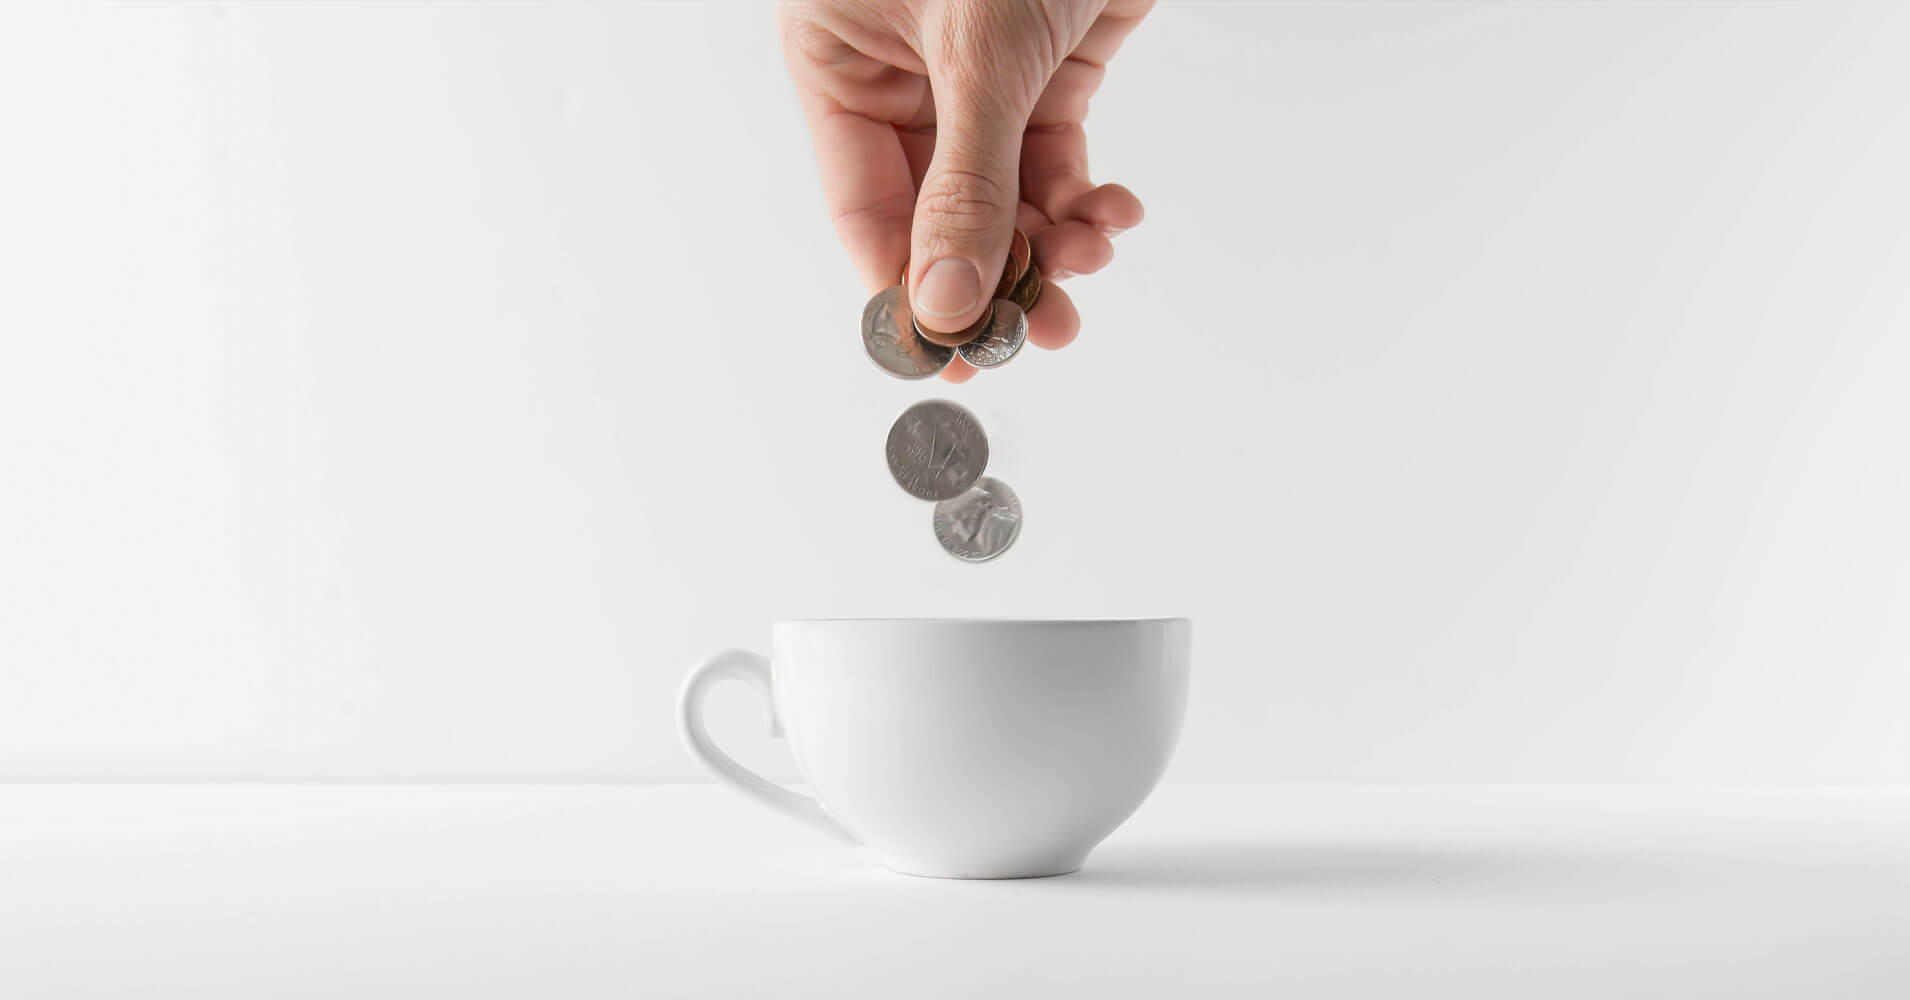 spend less - coins falling in mug